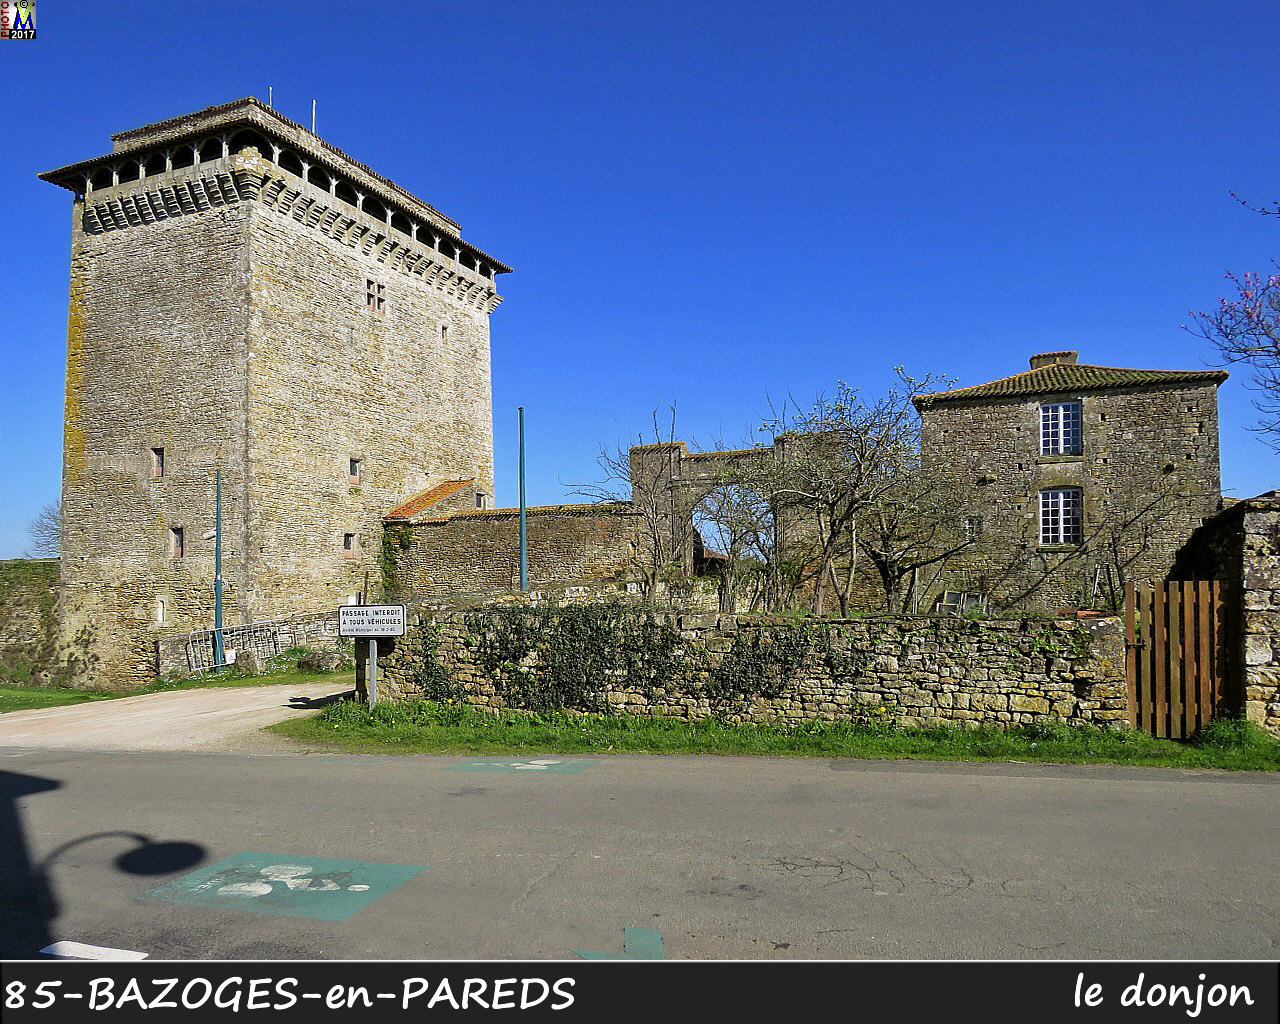 85BAZOGES-PAREDS_donjon_1002.jpg